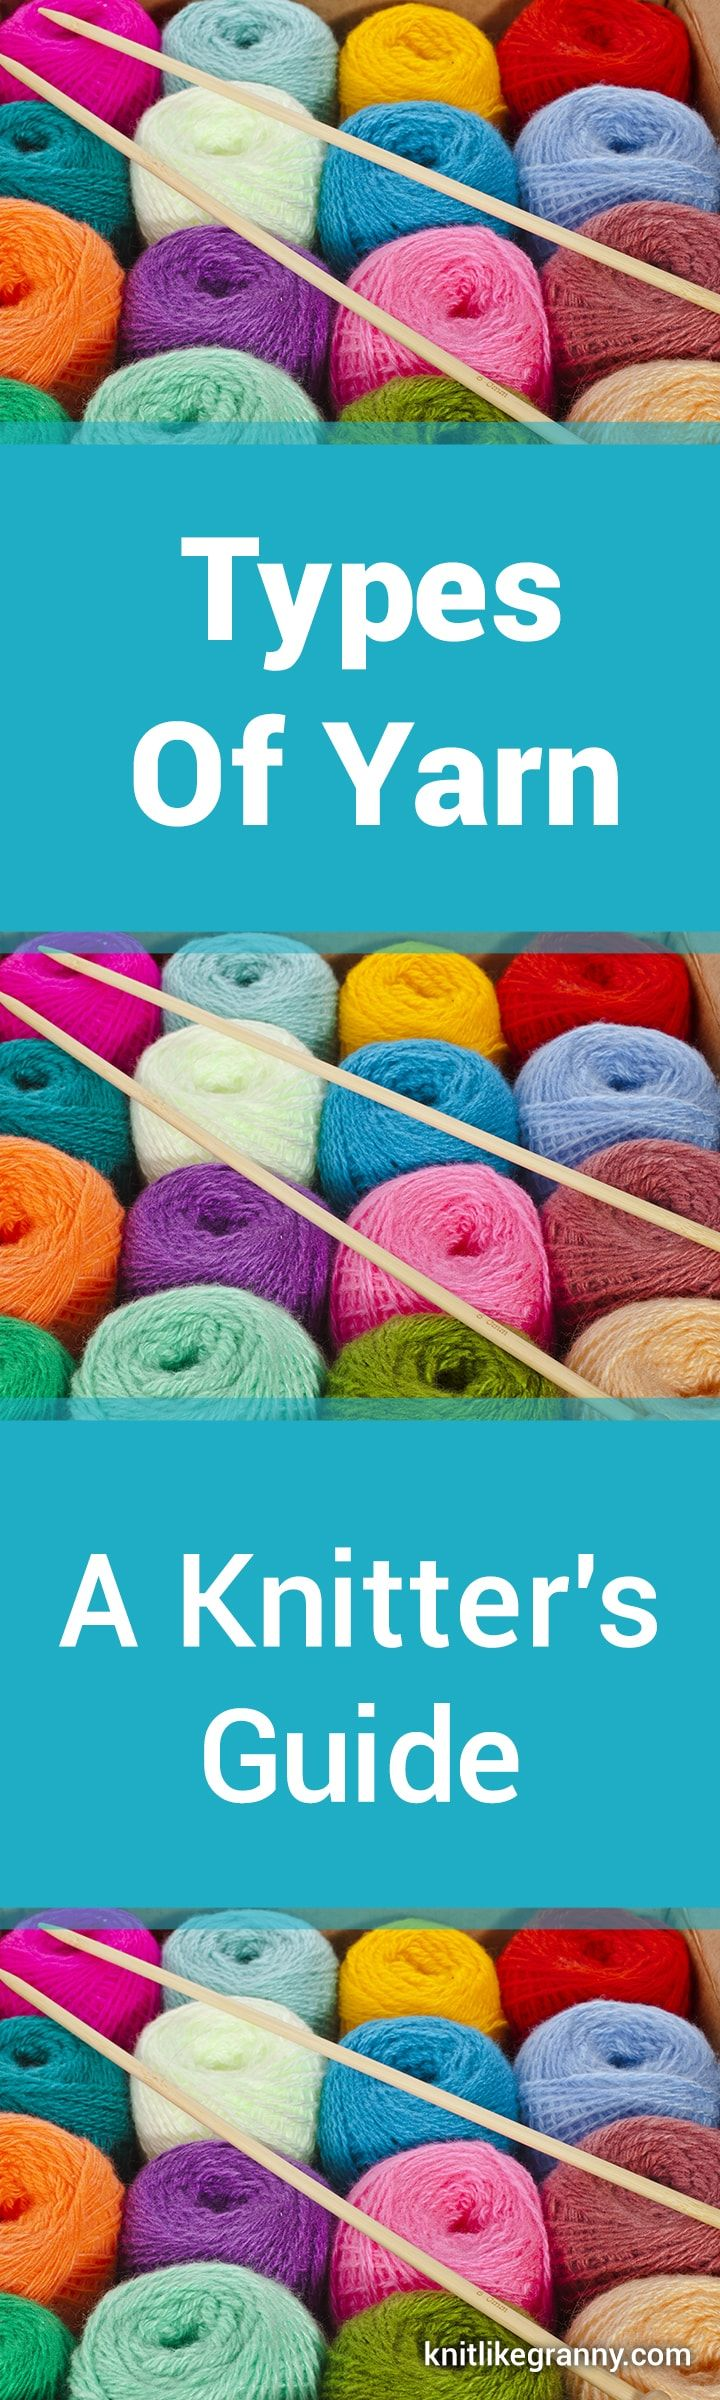 Types of Yarn ~ A Knitter's Guide for 2017 Looking for the best yarn for knitting? Just looking at yarn balls make you want to knit! Wool, Cashmere, Alpaca, Merino, Organic Yarn, Cotton Yarn, Silk Yarn, Self-Striping Yarn Hemp Yarn, Bamboo Yarn, Acrylic Yarn, Novelty Yarns, Mohair, Speciality Yarns, Wool Blend Yarns You'll Get To Meet The Yarn Weight Categories And Understand Them Choosing the Right Yarn for a Pattern We ShareThings to Consider When Shopping for Yarn - Read Our Top Tips.